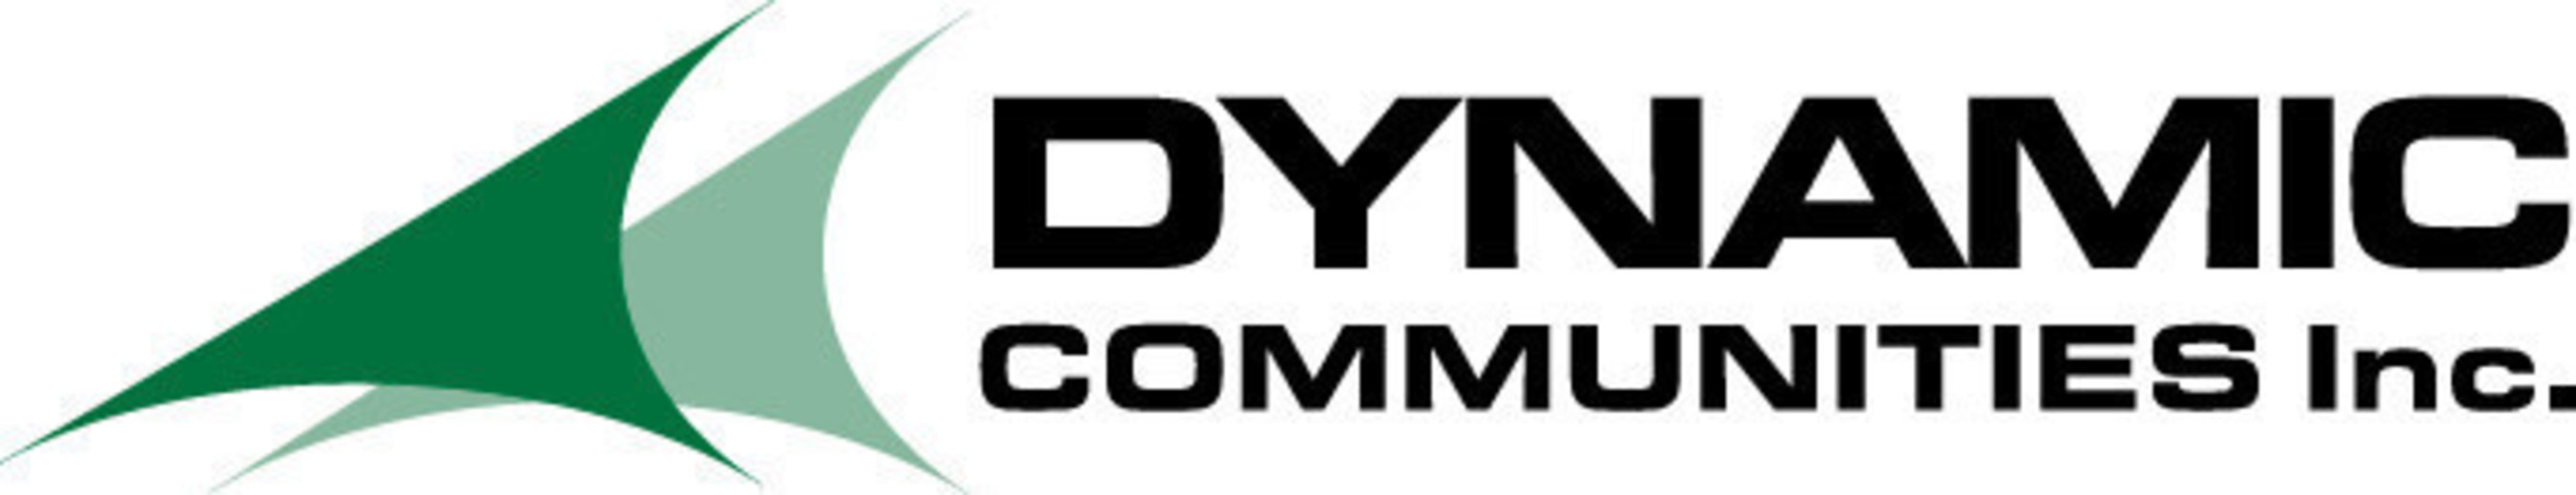 Dynamic Communities, Inc. Announces 2016 Schedule of Dynamics End-User Events